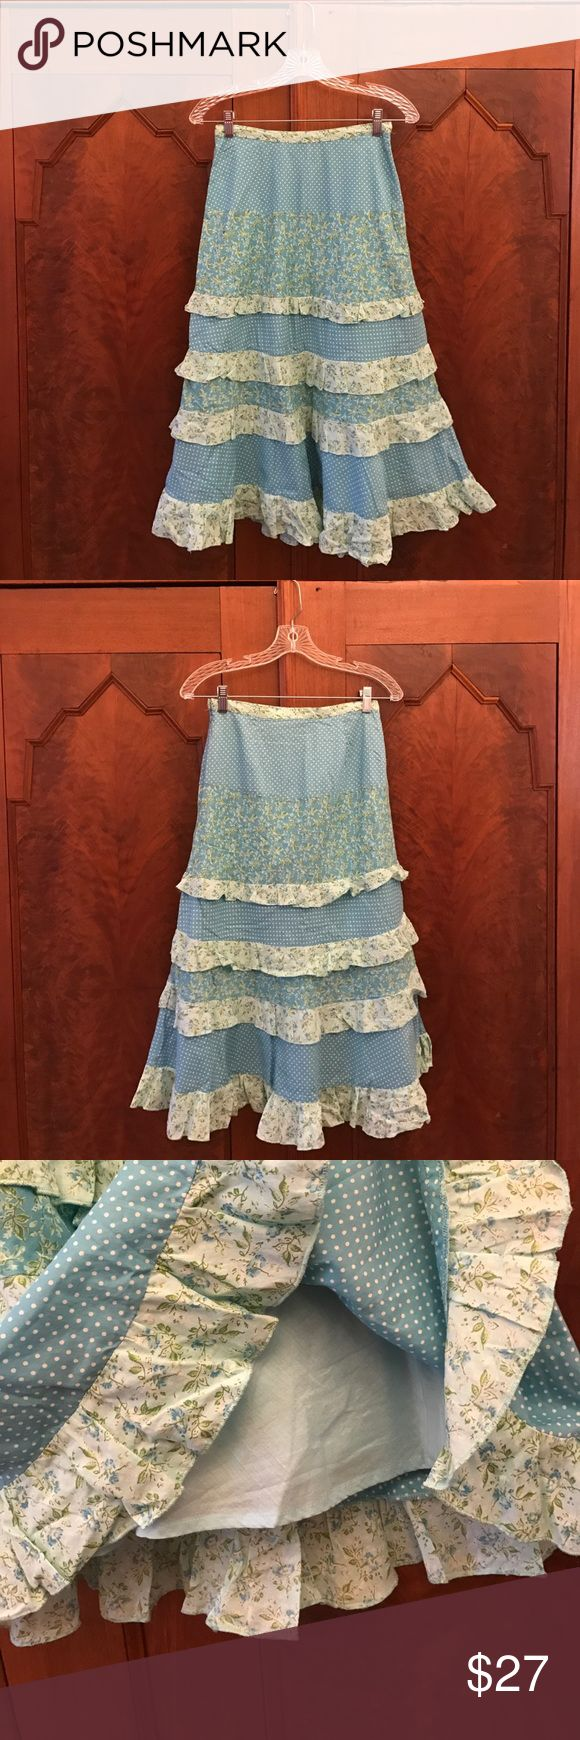 April Cornell - Tiered Skirt in 100% Cotton Like new! Tiered skirt with ruffles in blue floral and dot prints. Fully lined! Closes with a side zip and a hook. Smoke free, pet free and fragrance free home 🏡 100% Cotton April Cornell Skirts A-Line or Full